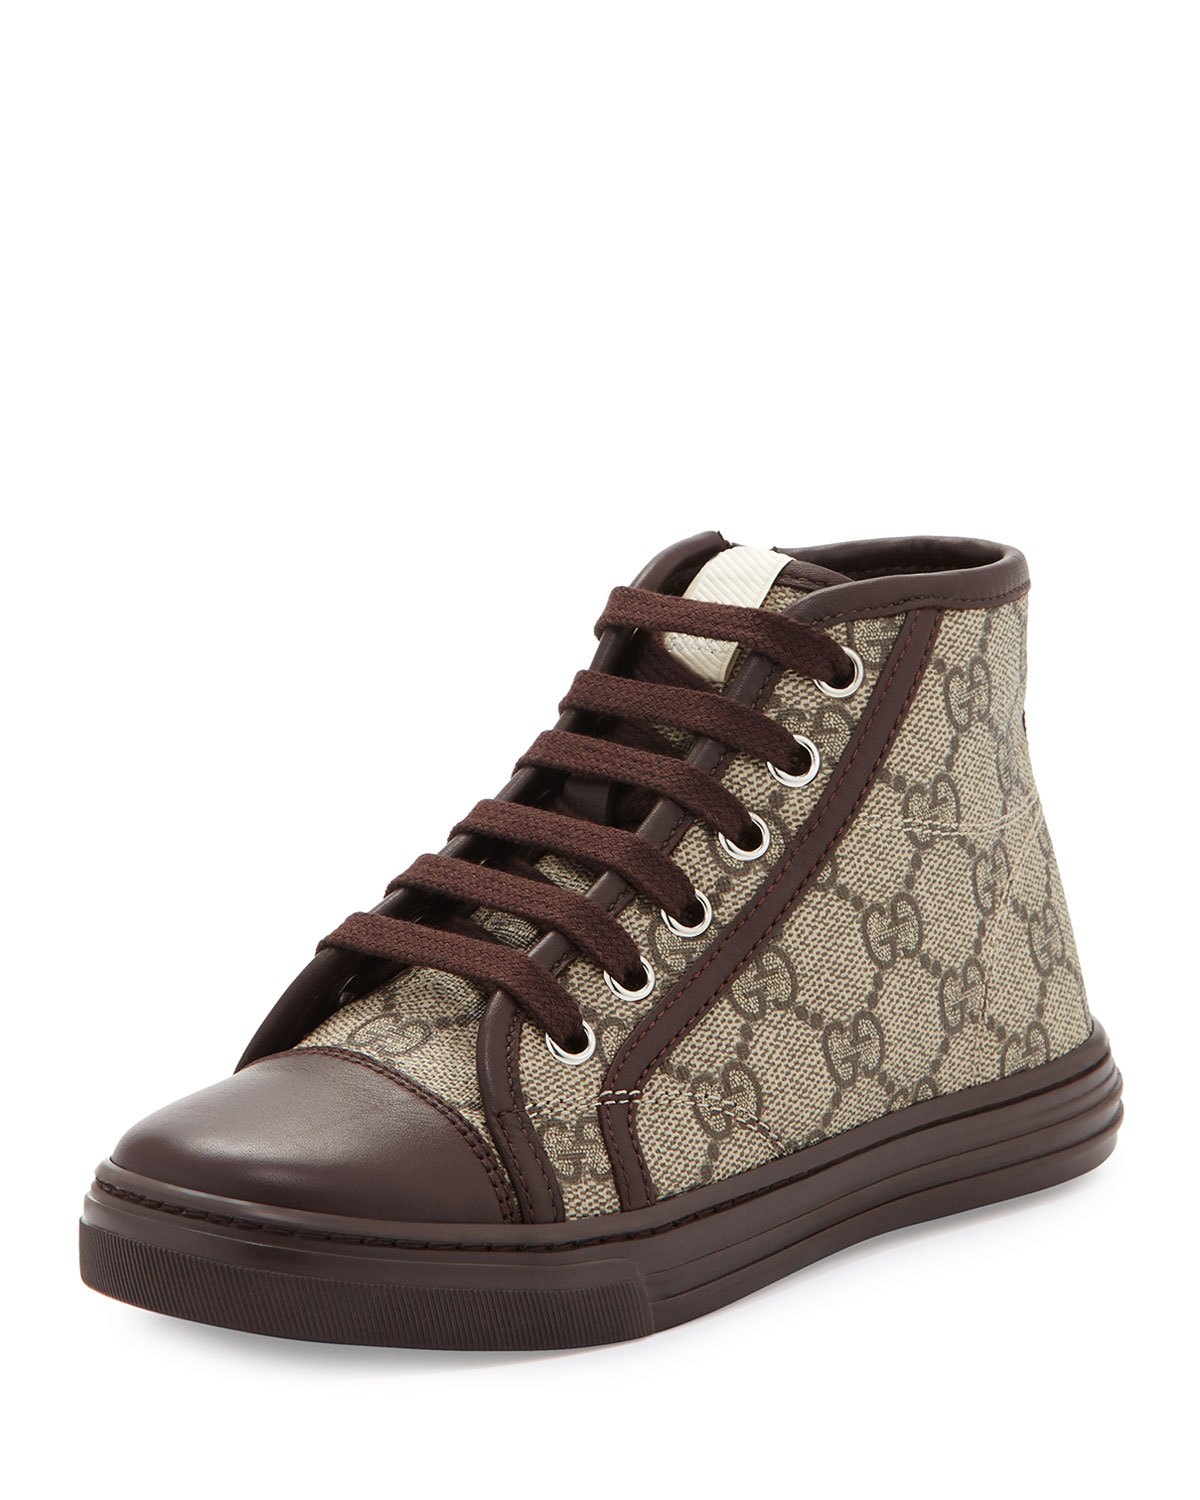 4ef2462629c Gucci GG Supreme Canvas High-Top Sneakers